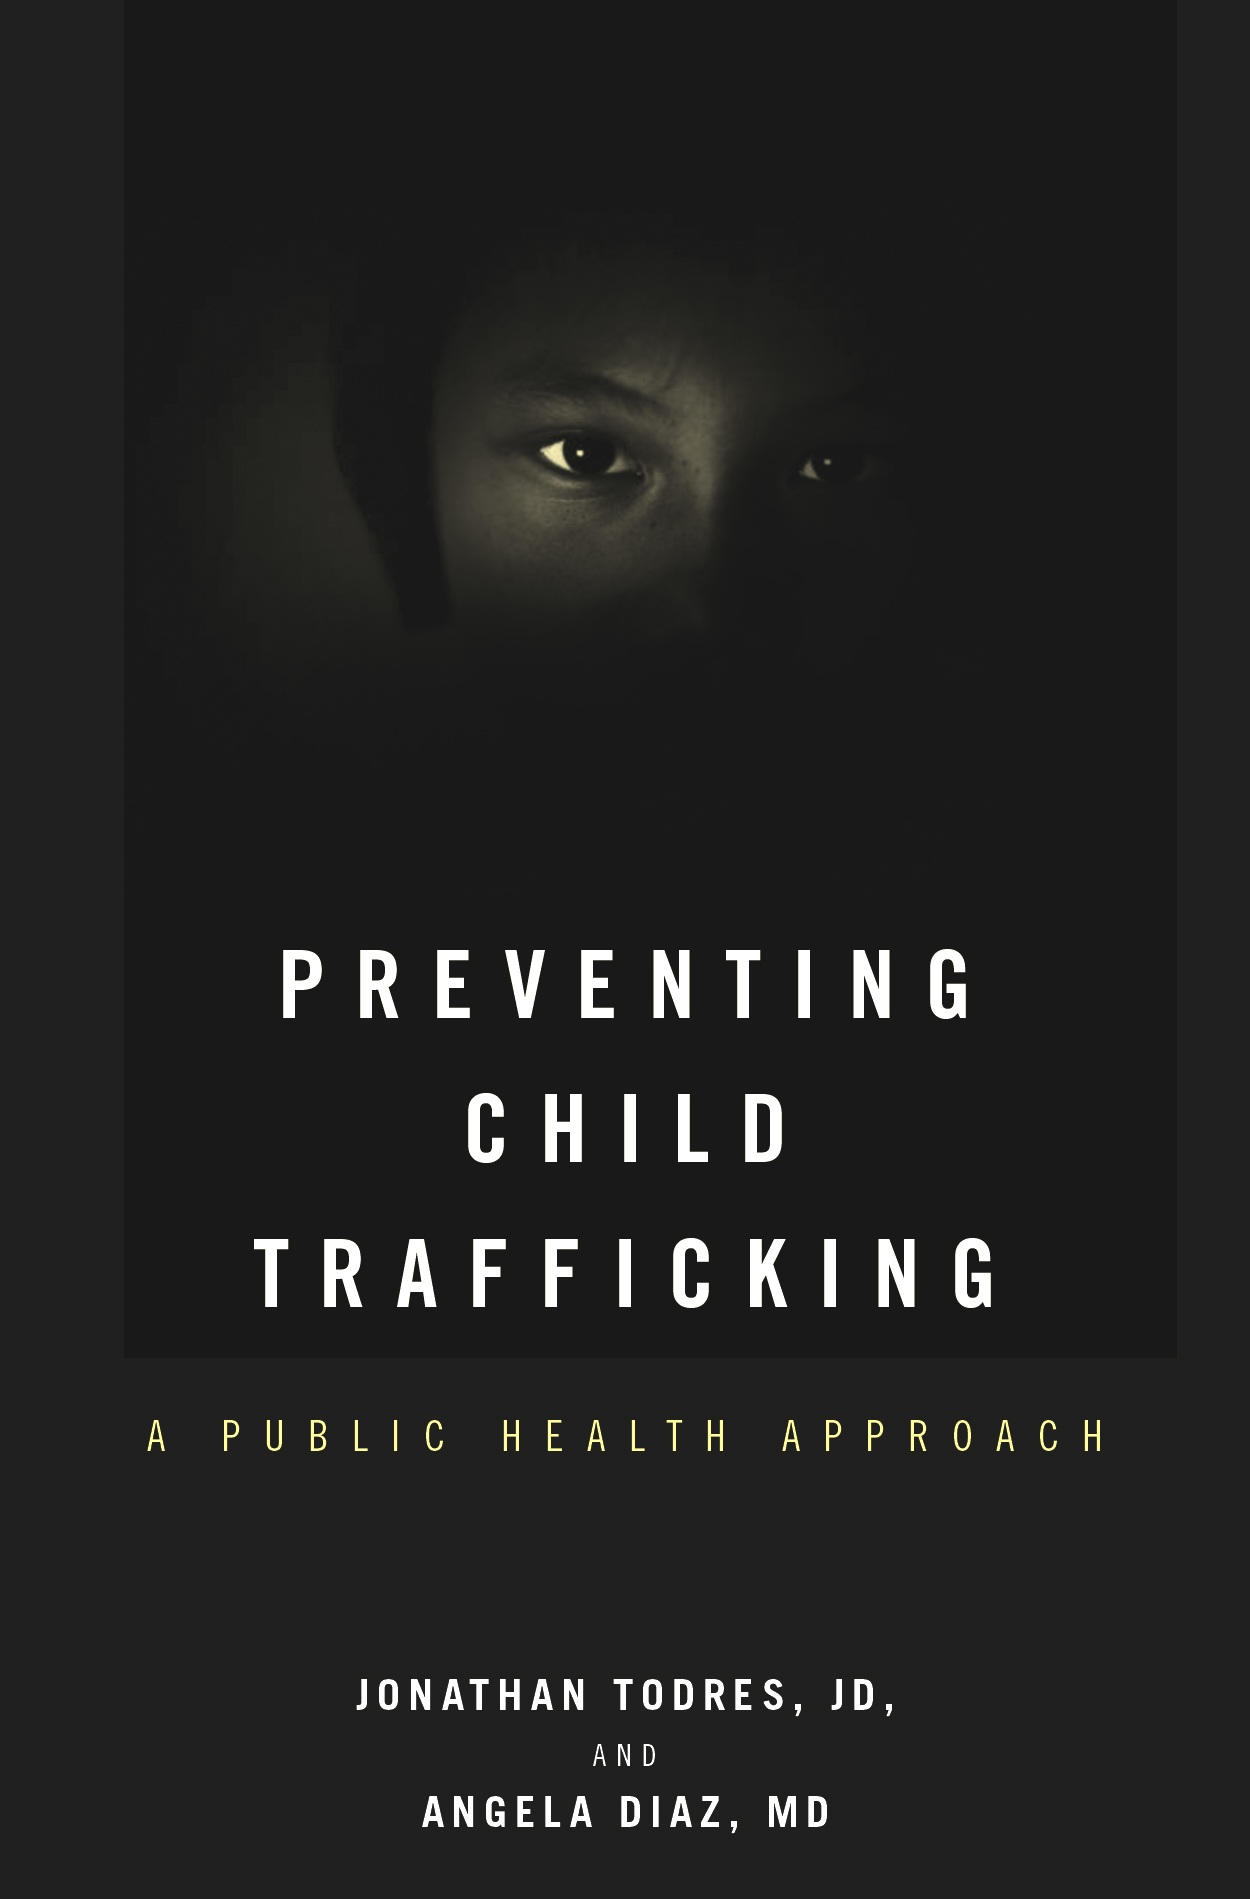 TRAFFICKING+BOOK+COVER.jpg